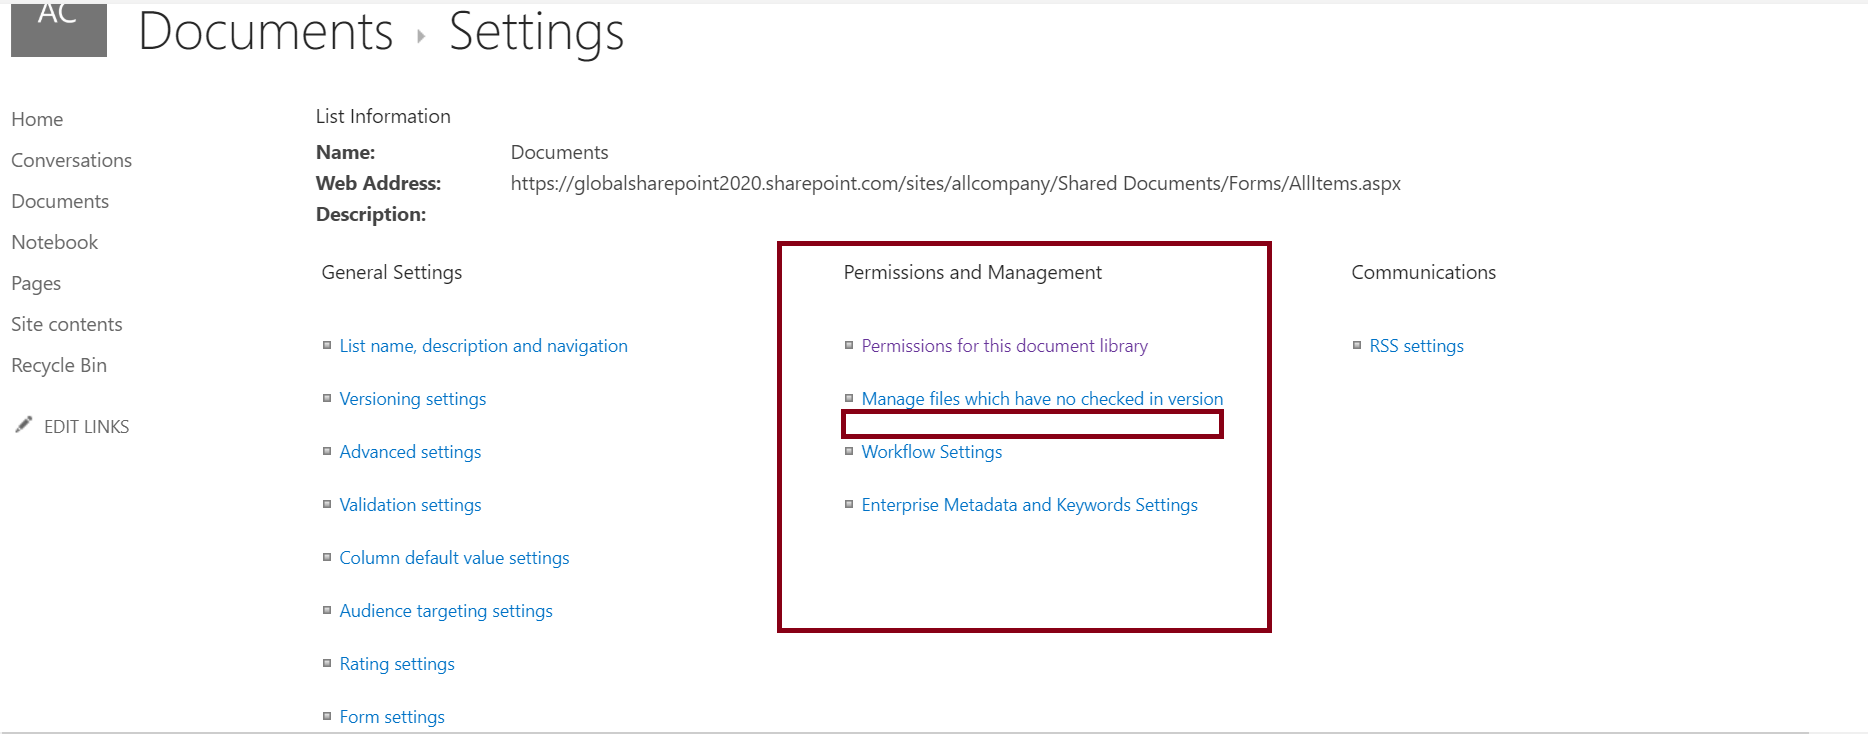 Permissions and management in document library settings